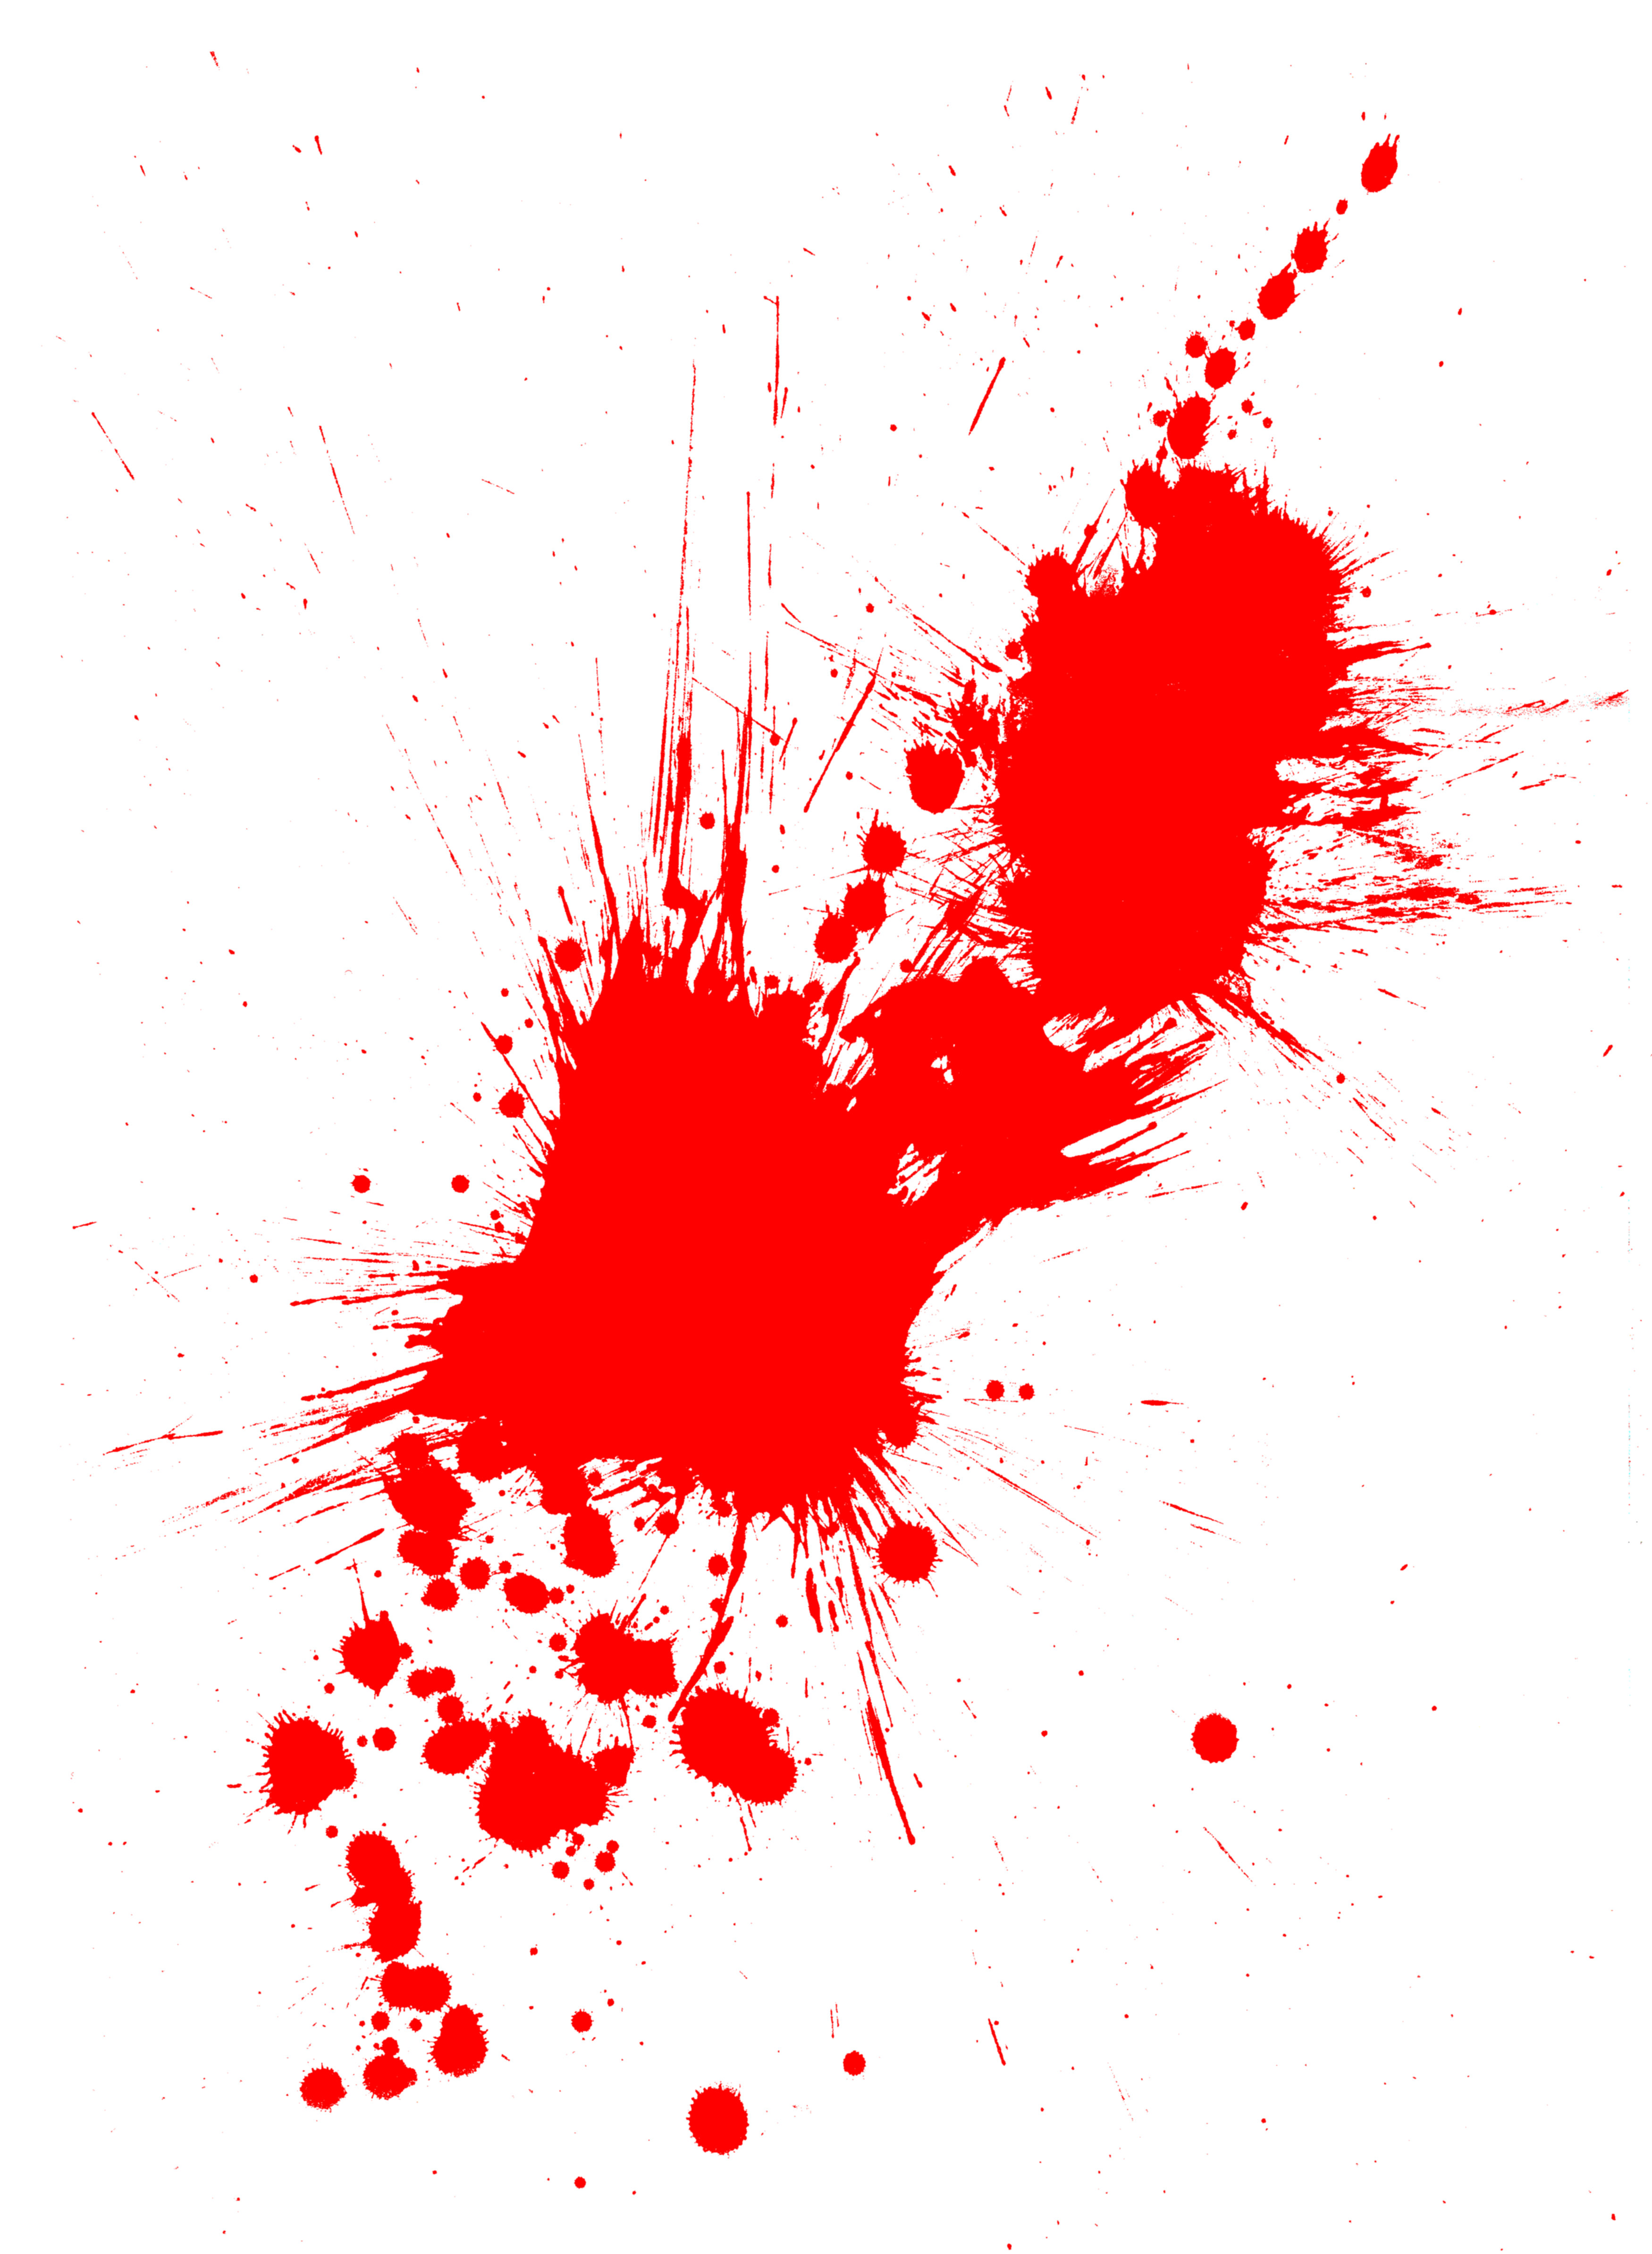 Blood Splatter Jpg Onlygfx Com Variations include pools, sprays, handprints, and footprints. onlygfx com